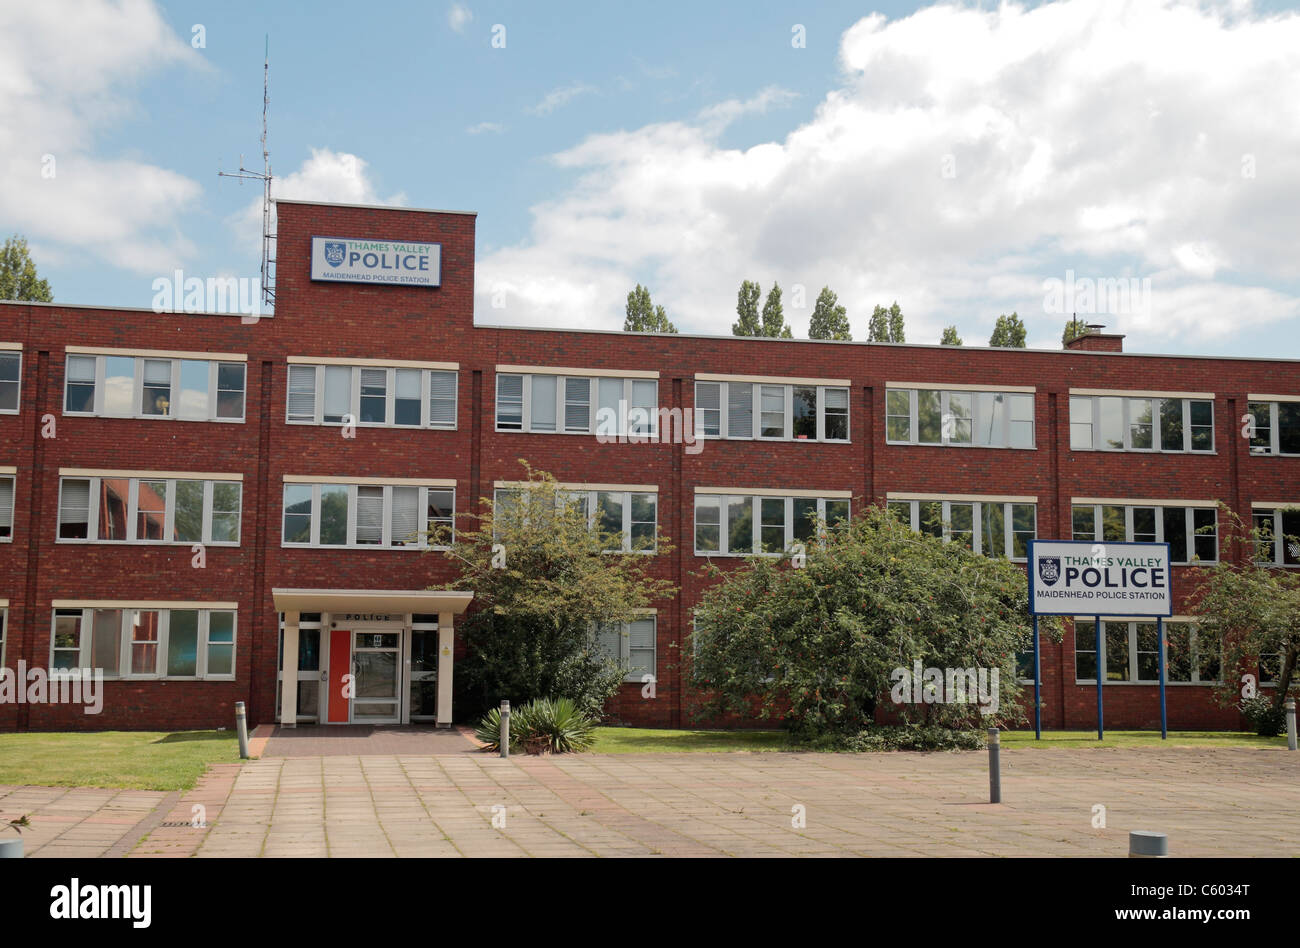 External view of the Thames Valley Police station in Maidenhead, Berkshire, England. - Stock Image